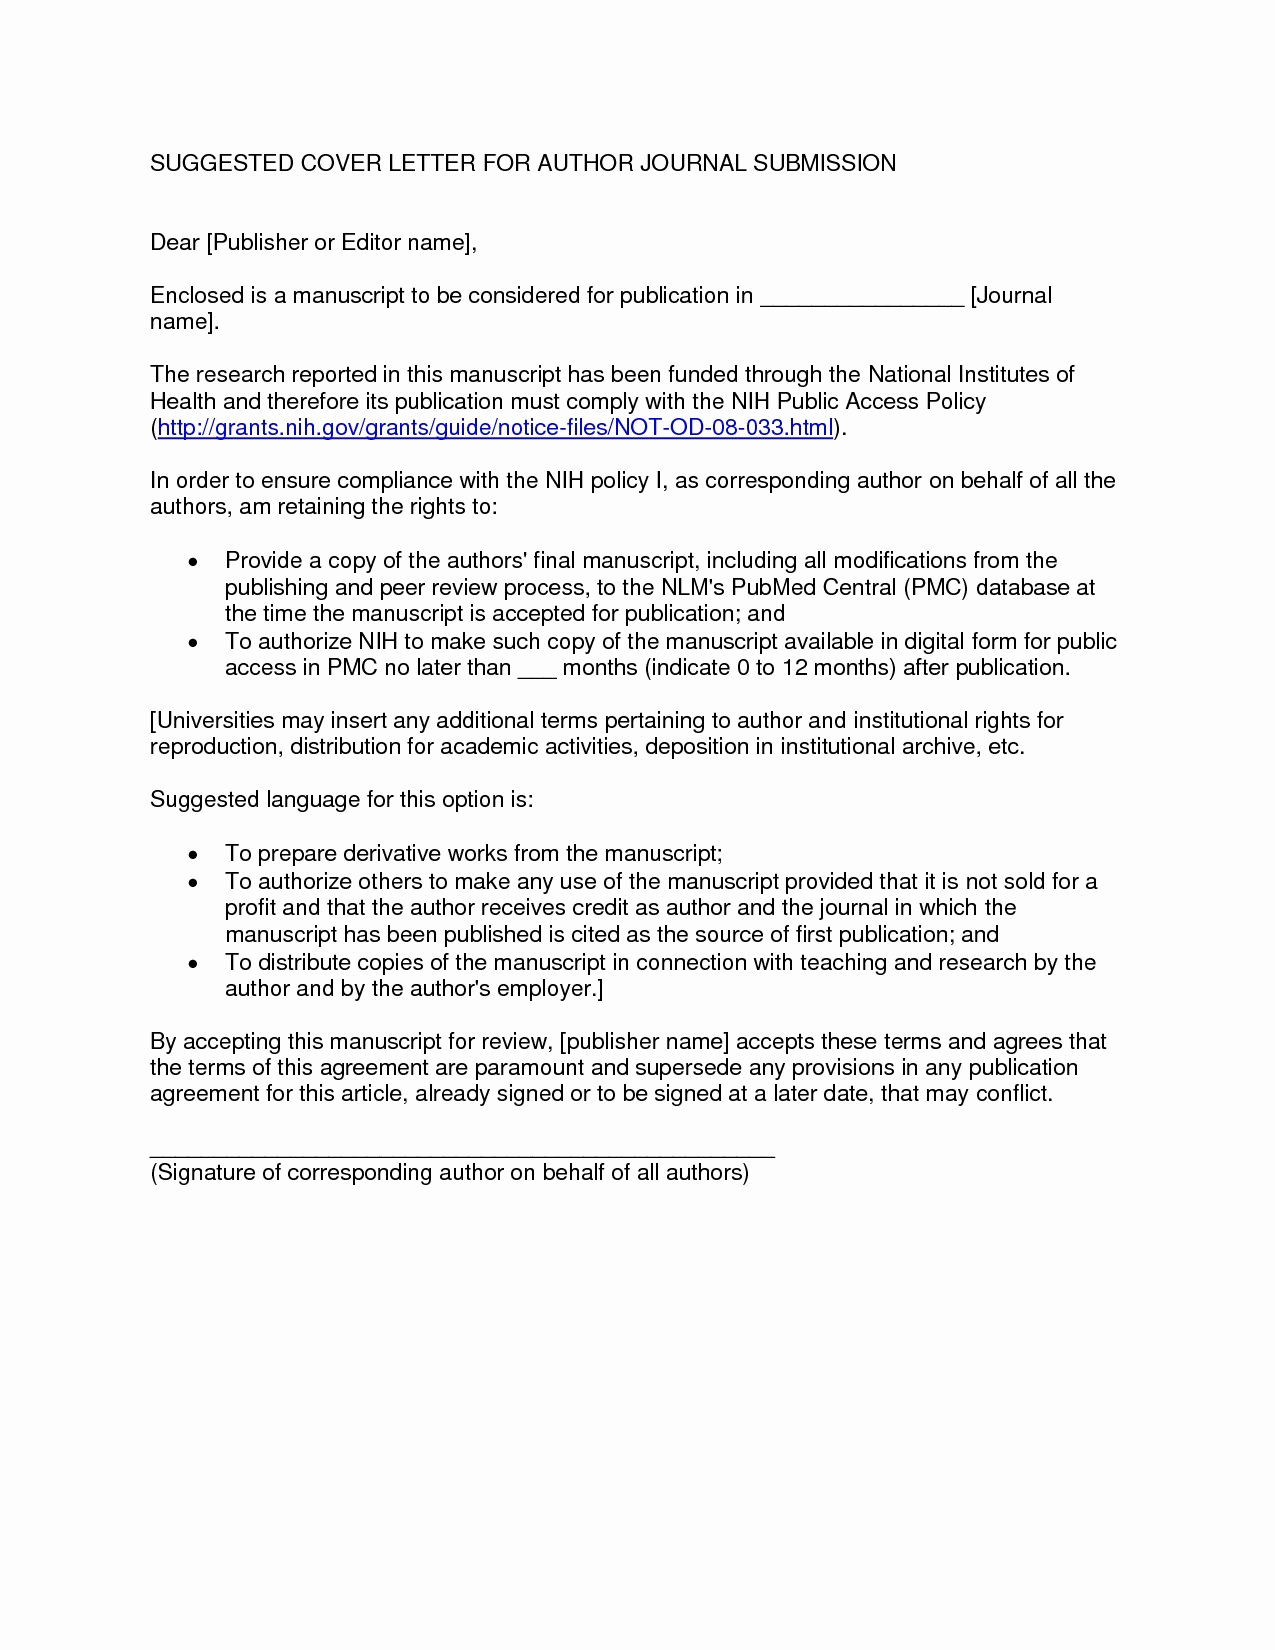 Distributor Agreement Sample Contract 019 Sample Contract Addendum New Distribution Agreement Example Best